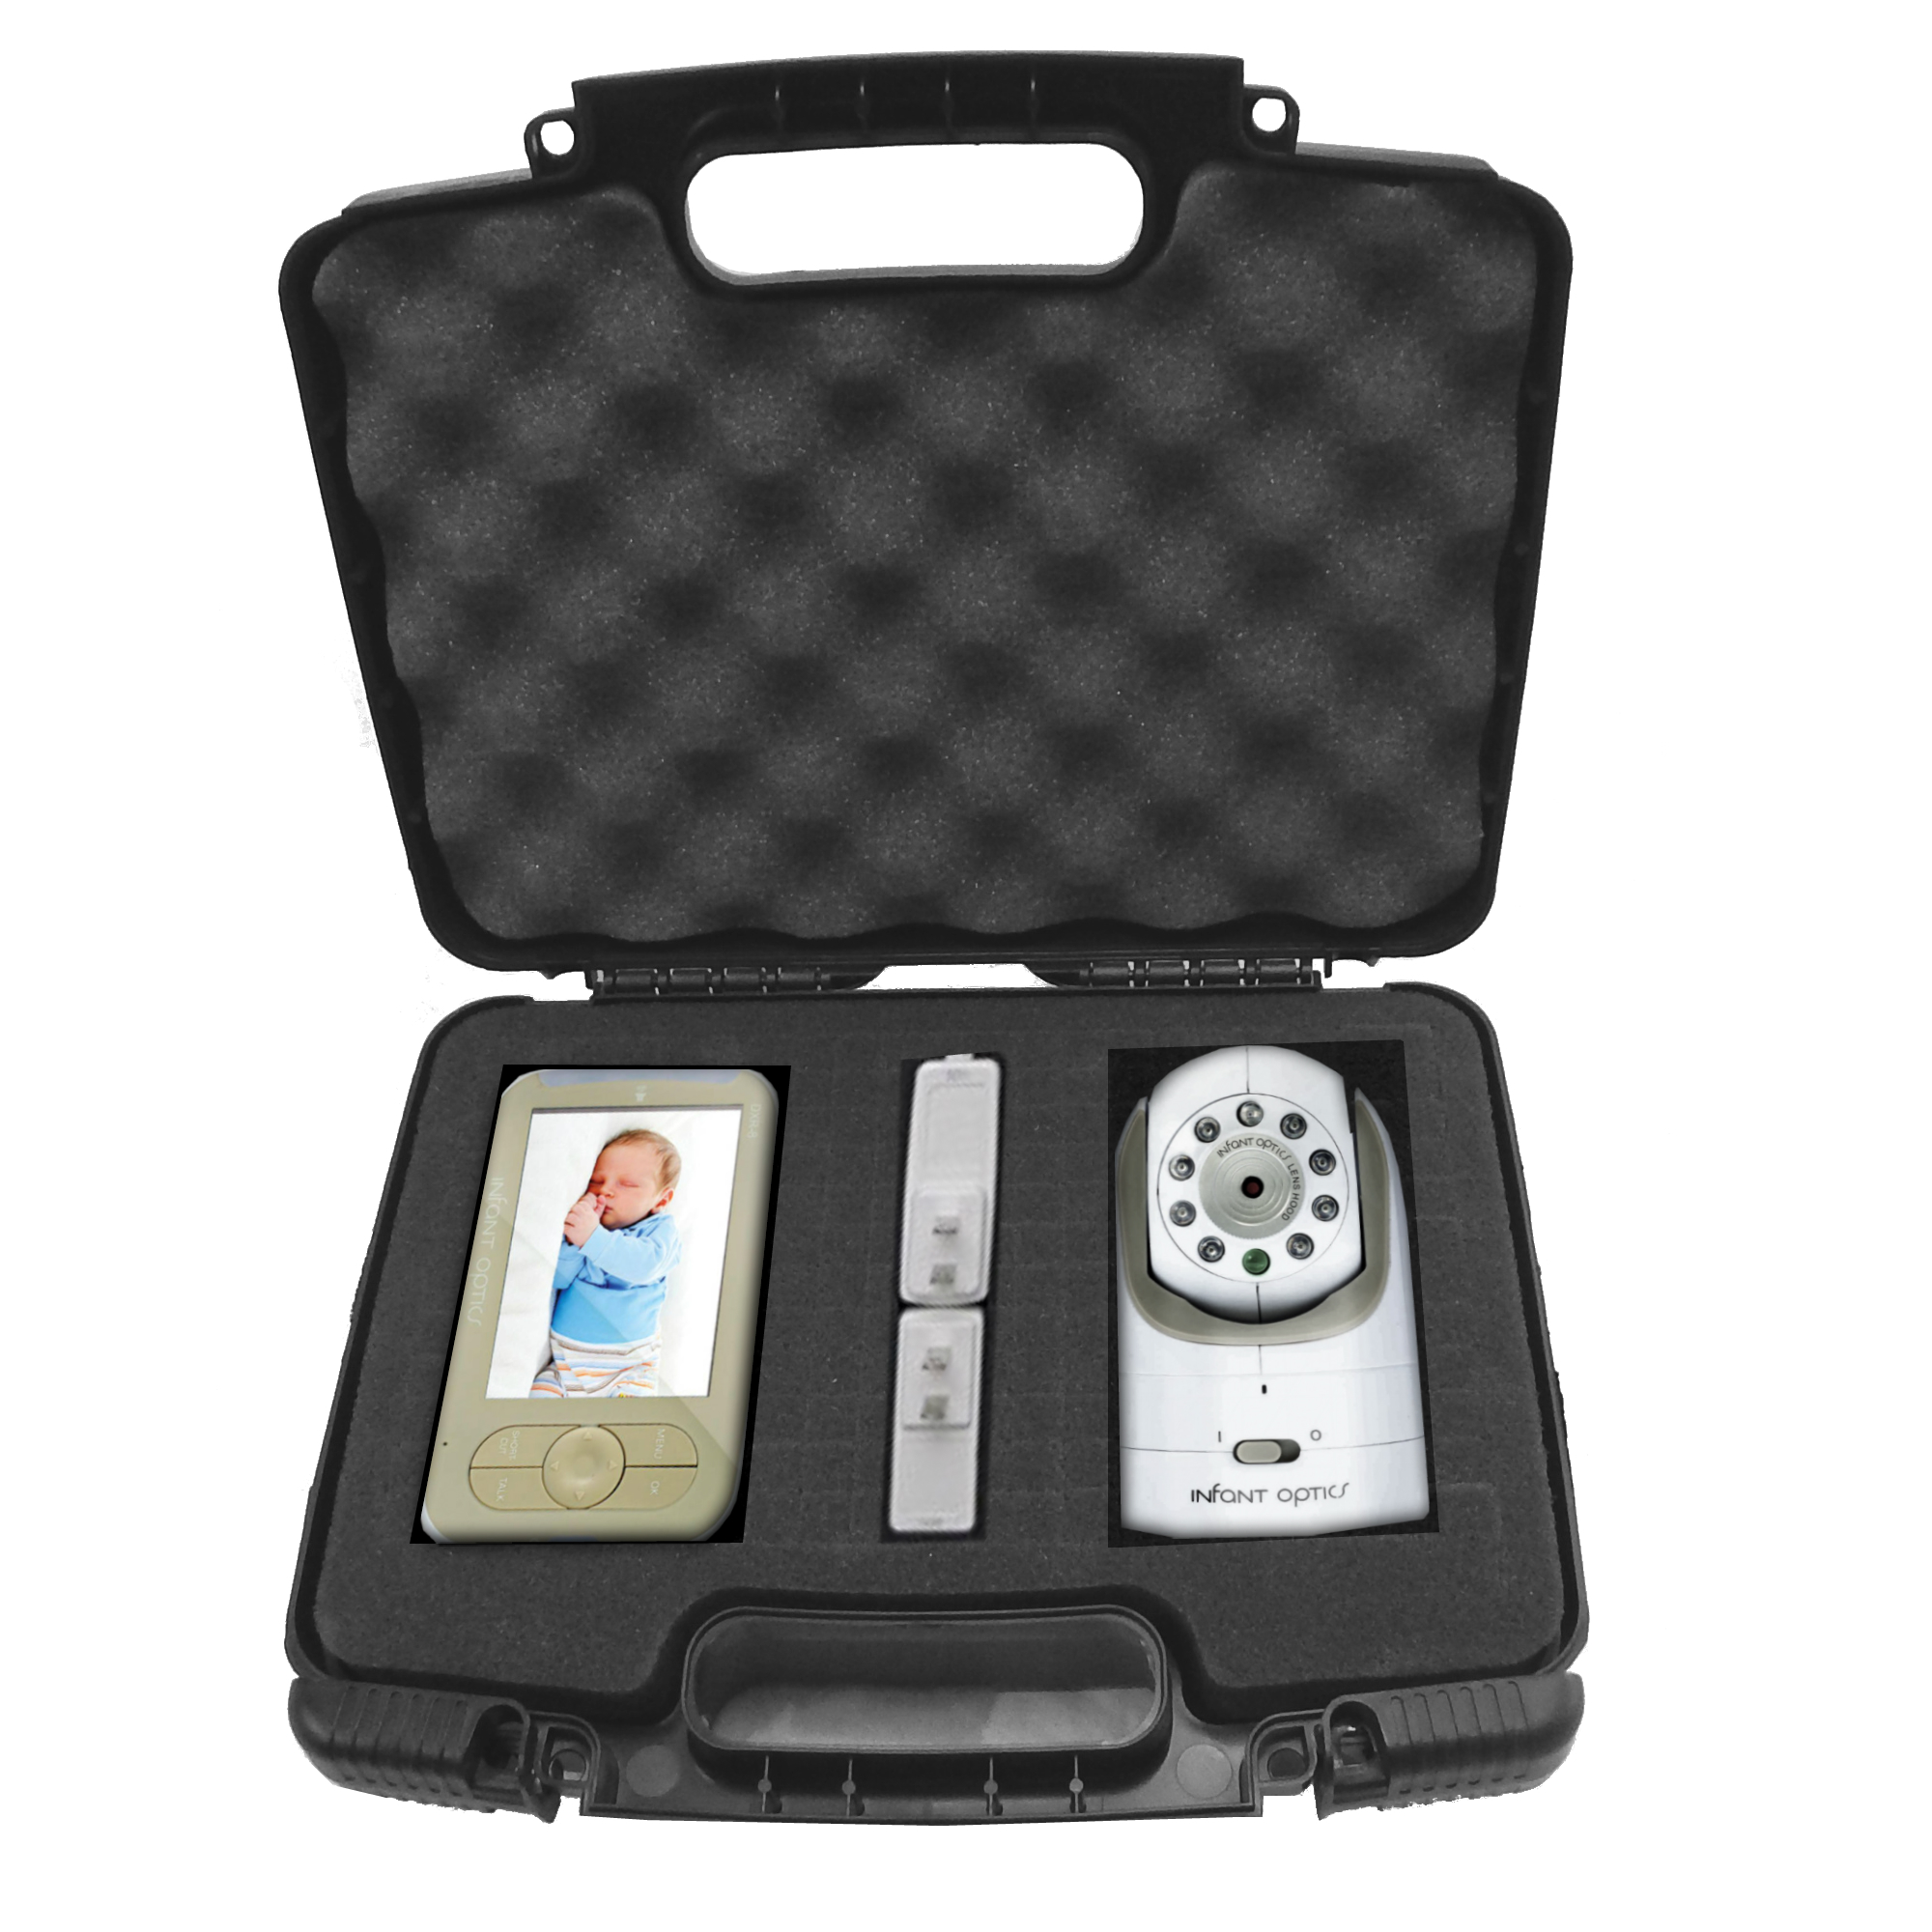 CASEMATIX Video Baby Monitor Ultra Protective Travel Carry Case with Impact Resistant Customizable Foam - Fits Infant Optics DXR-8 Digital Baby monitor , Camera , Screen , Lenses and Cables.